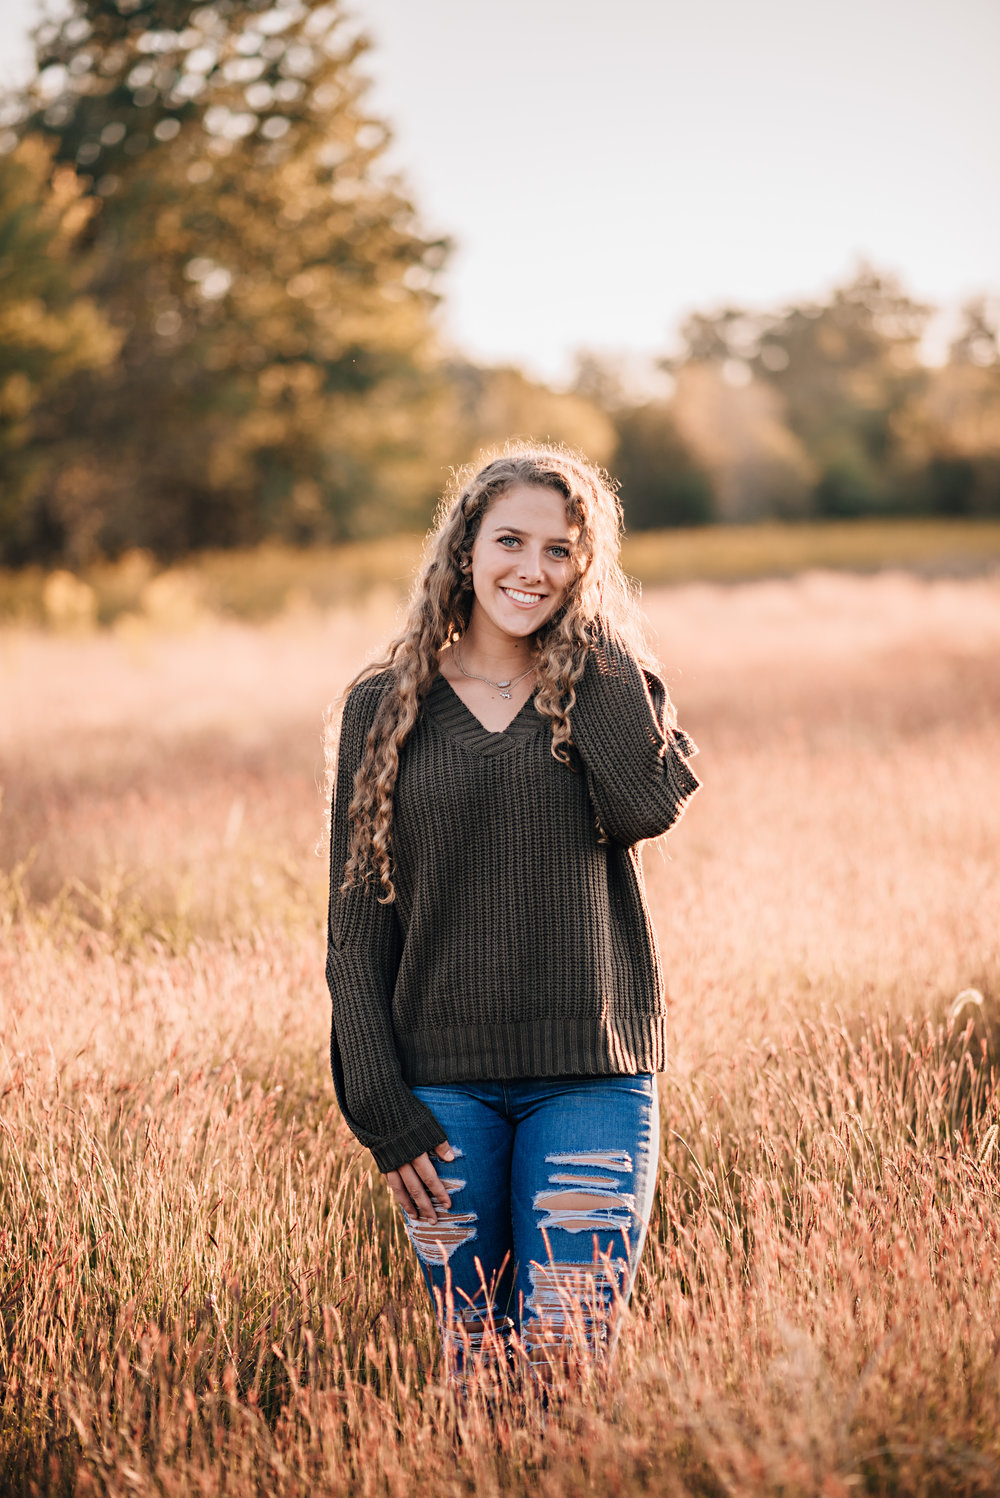 Carroll County MD senior portrait photographers